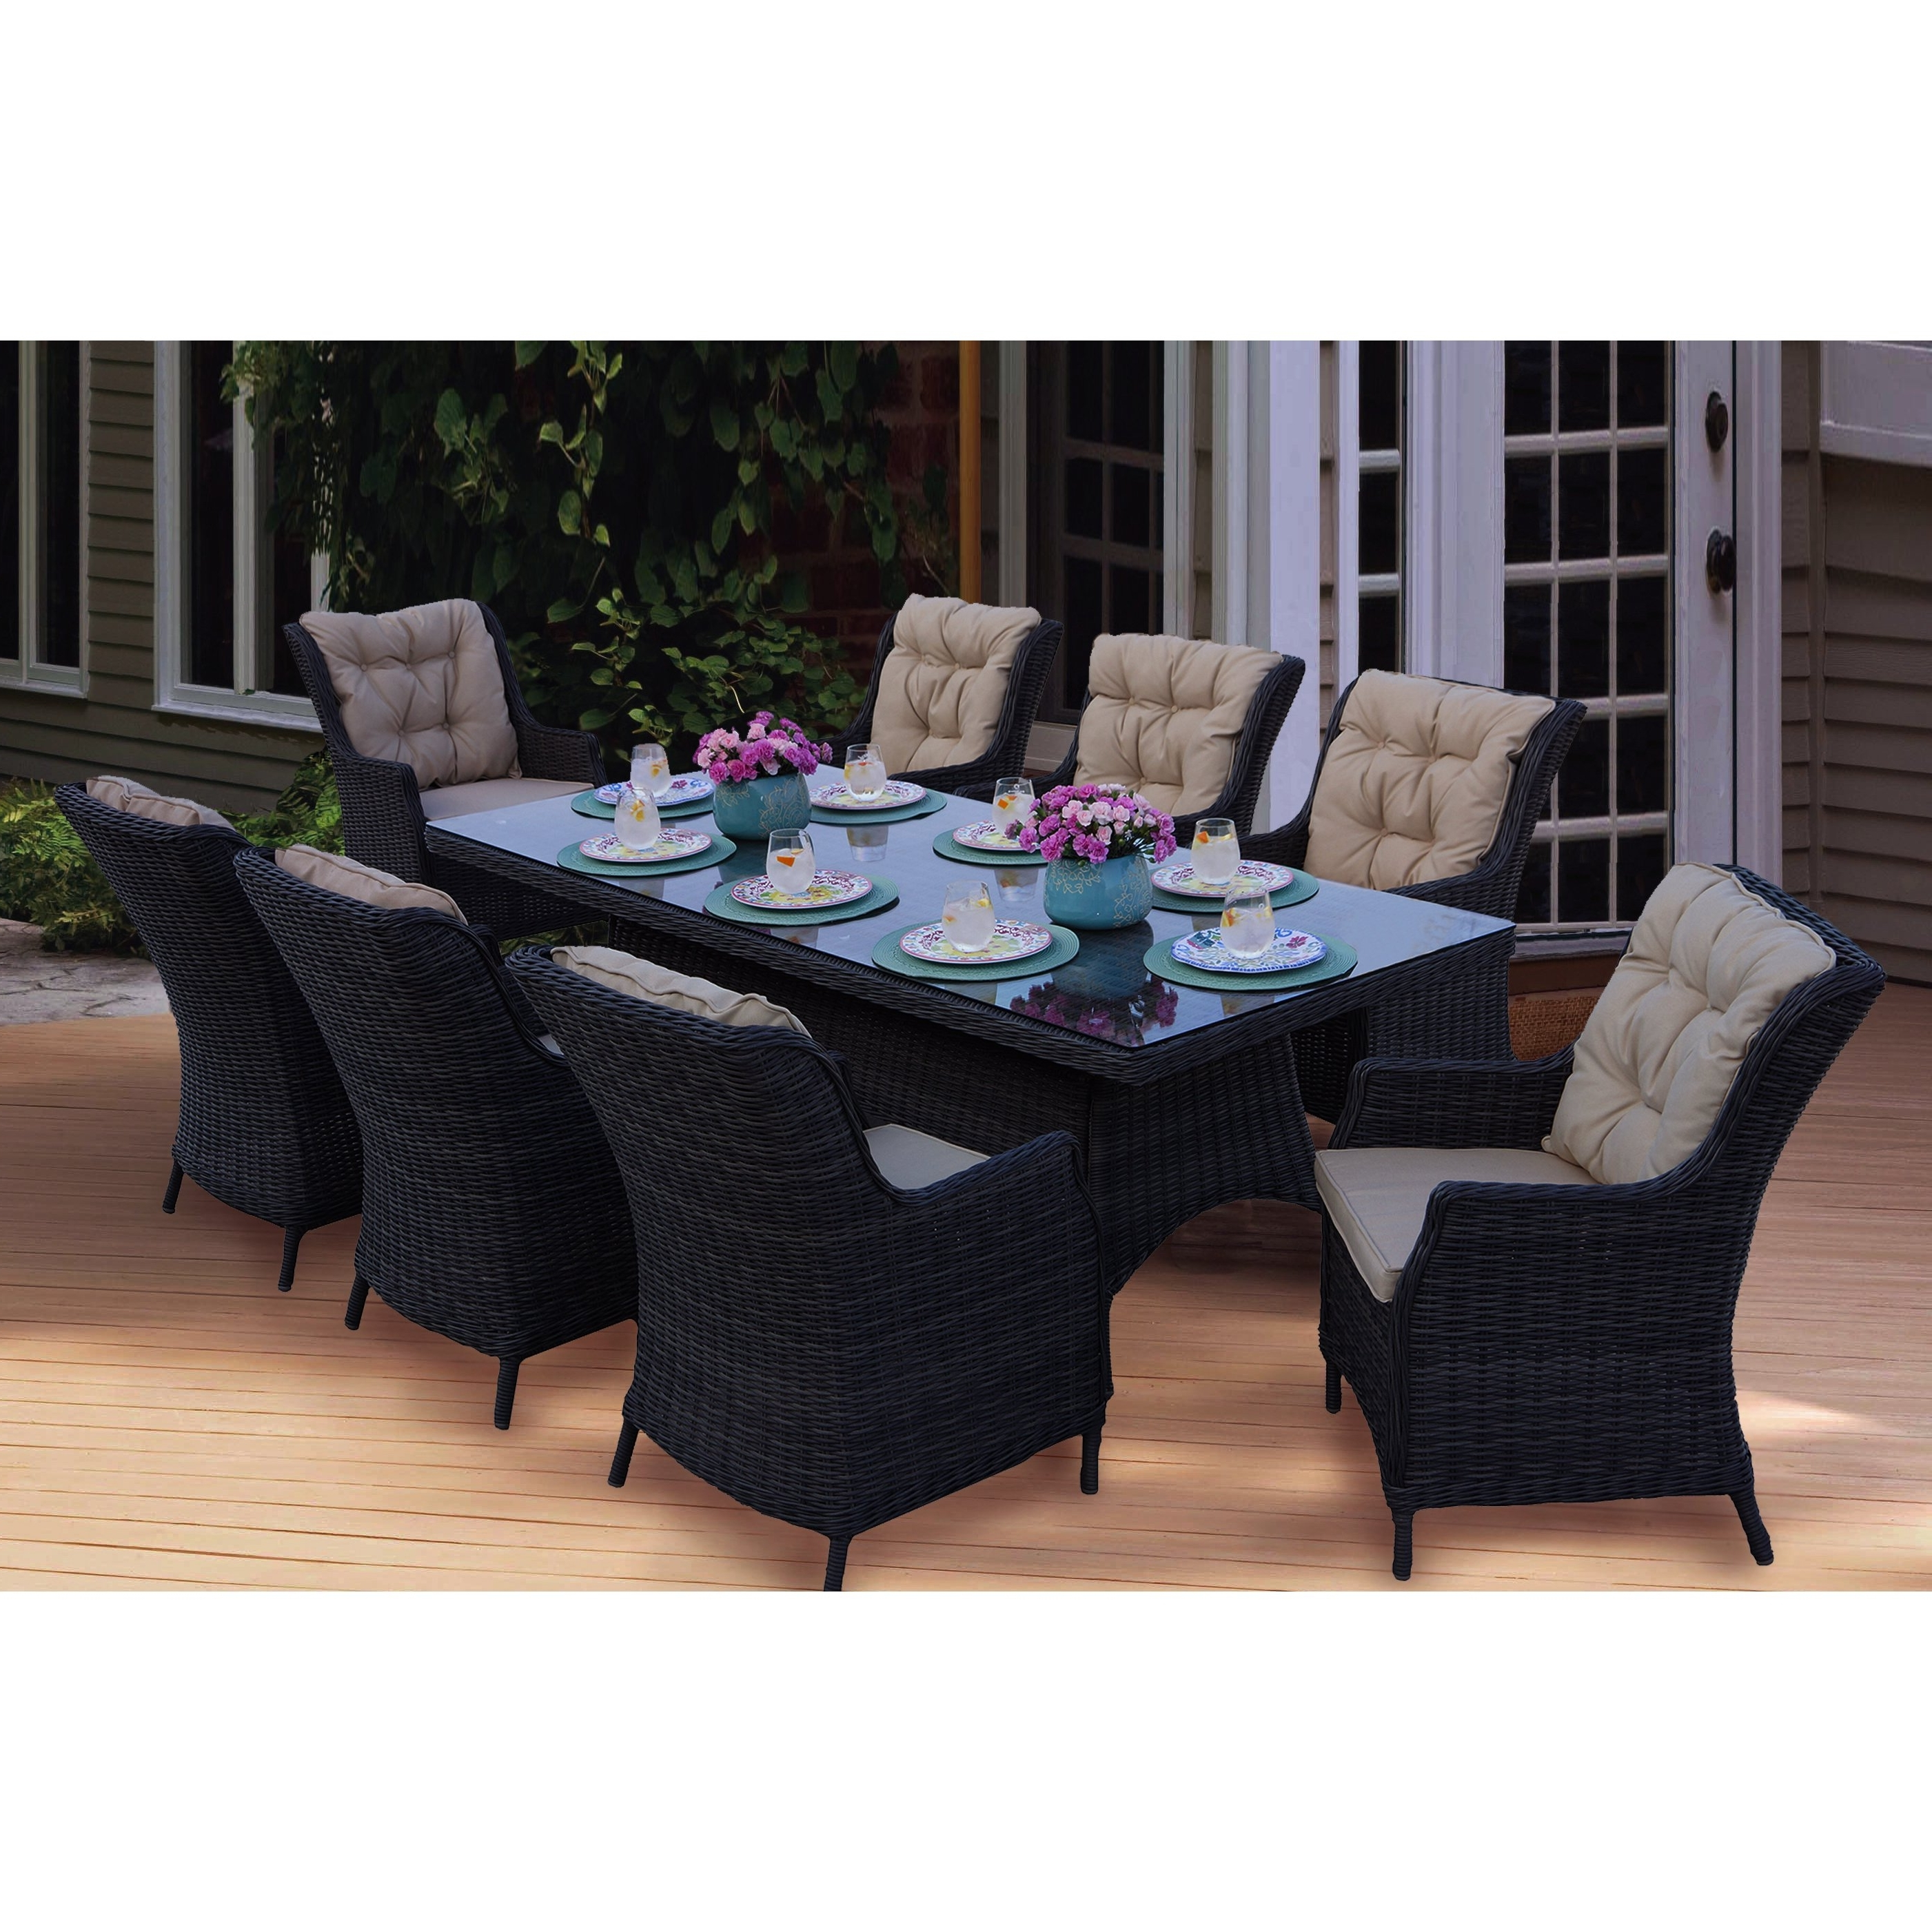 Valencia 5 Piece 60 Inch Round Dining Sets Pertaining To Well Known Shop Darlee Valencia Wicker Rectangular 9 Piece Dining Set (1 Table (View 19 of 25)